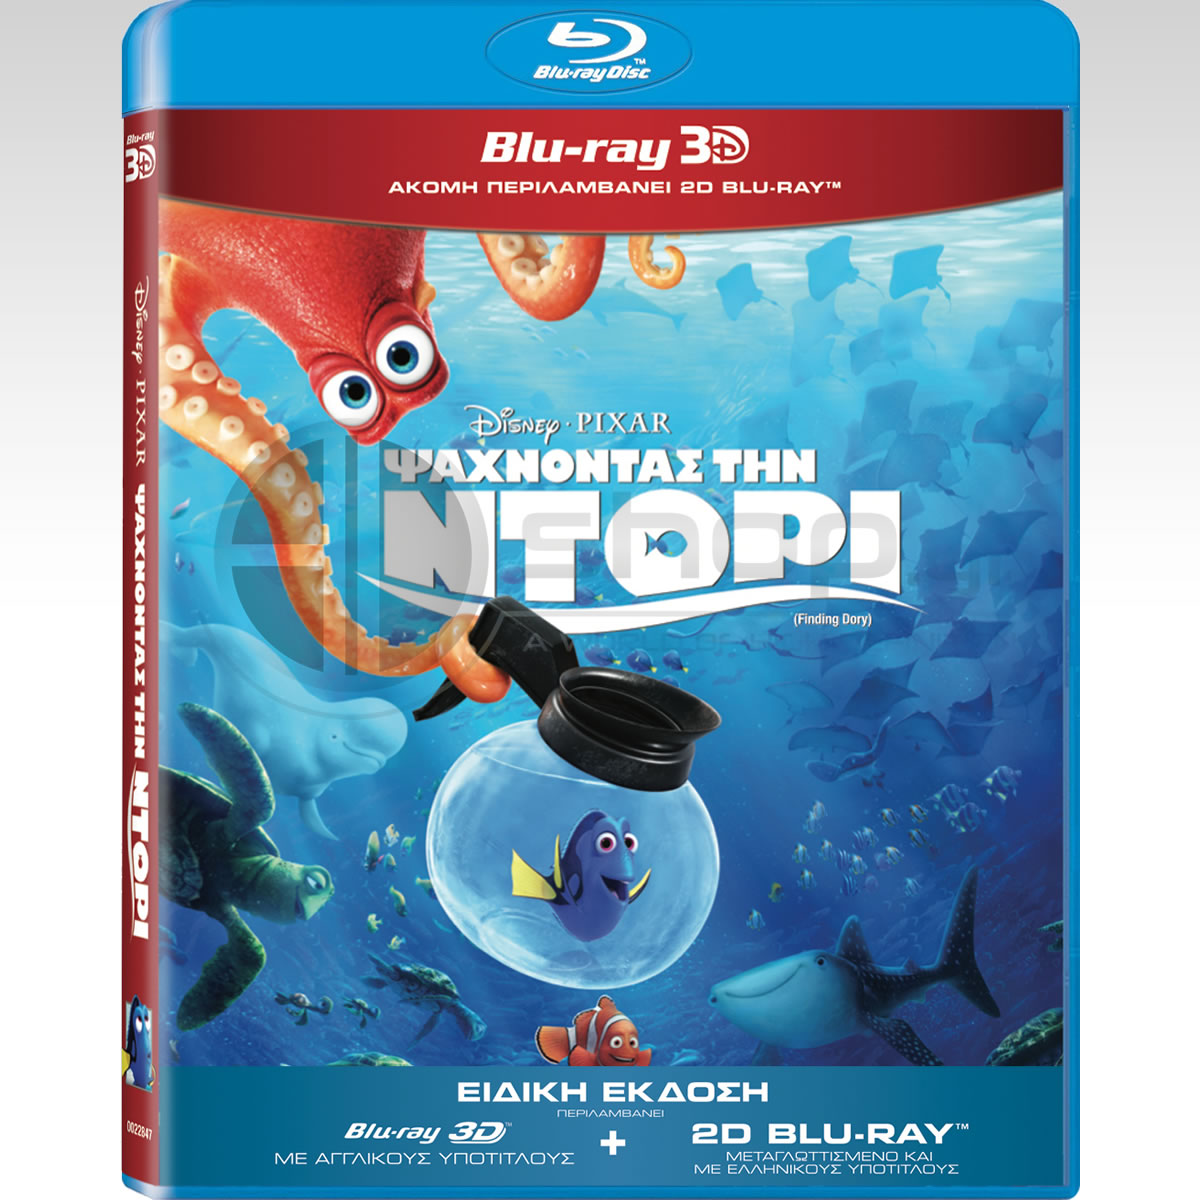 FINDING DORY 3D Special Edition Superset (BLU-RAY 3D + BLU-RAY)